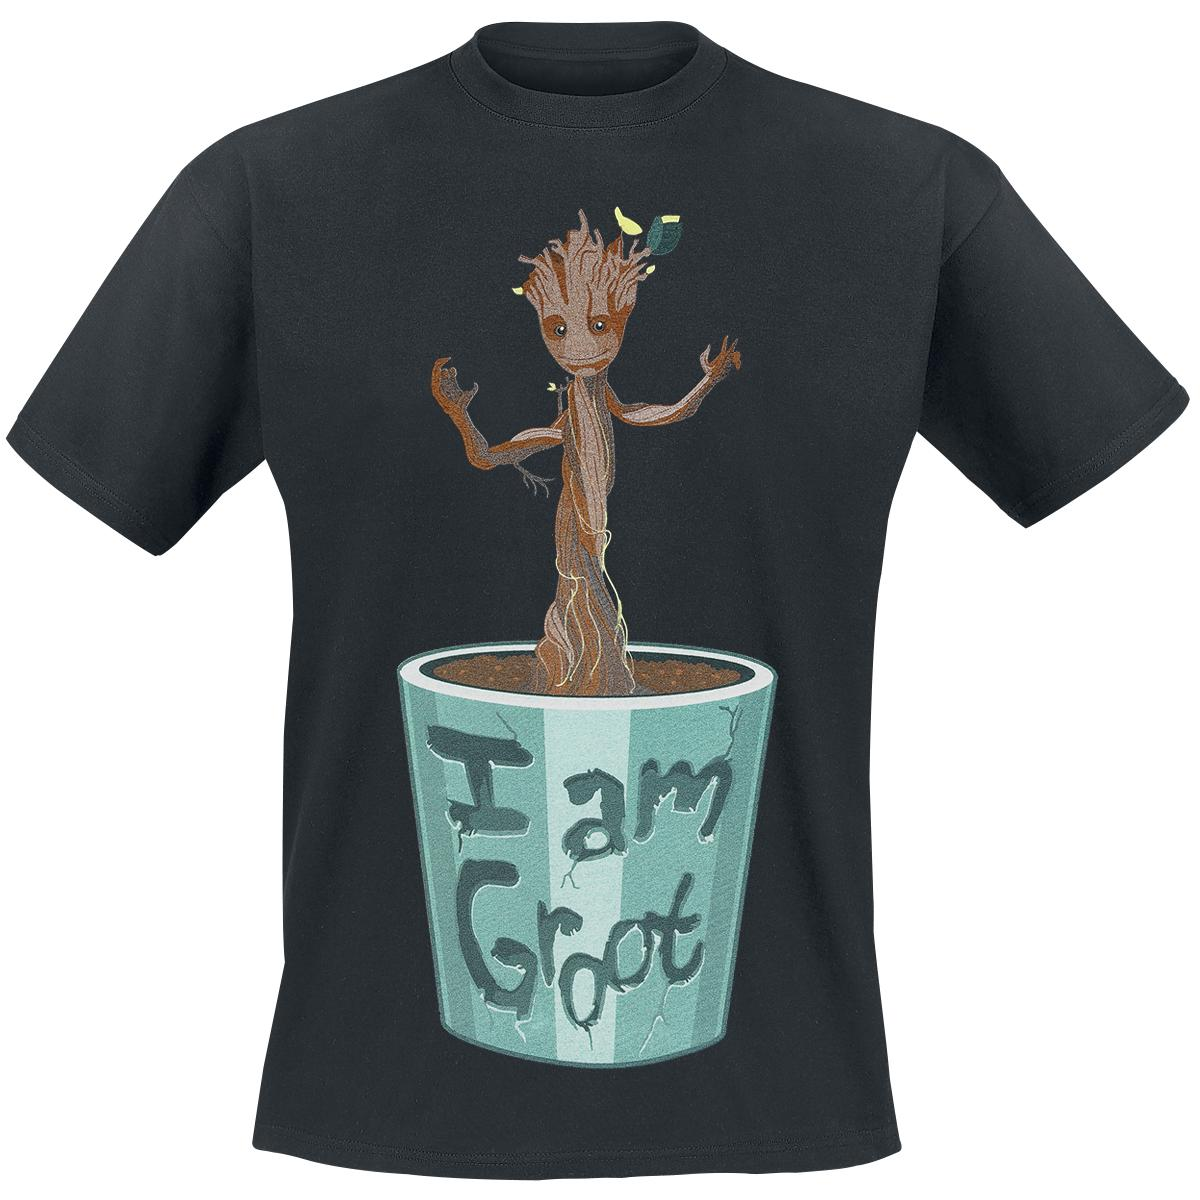 I Am Groot T-shirt Design tee